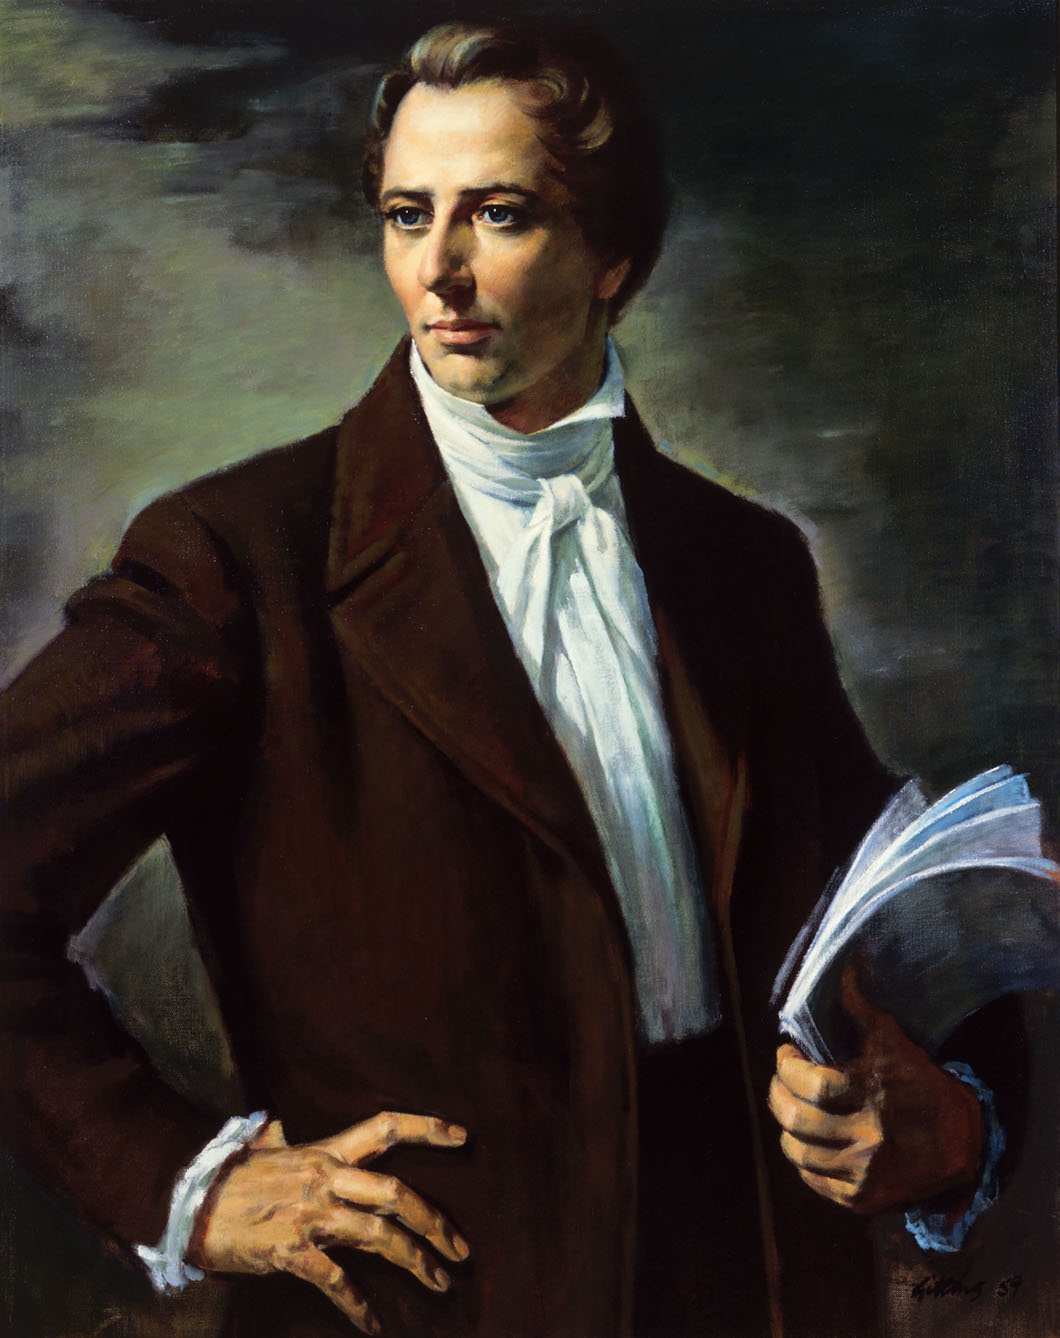 TriGrace Ministries: Joseph Smith- Free Mason? Joseph Smith